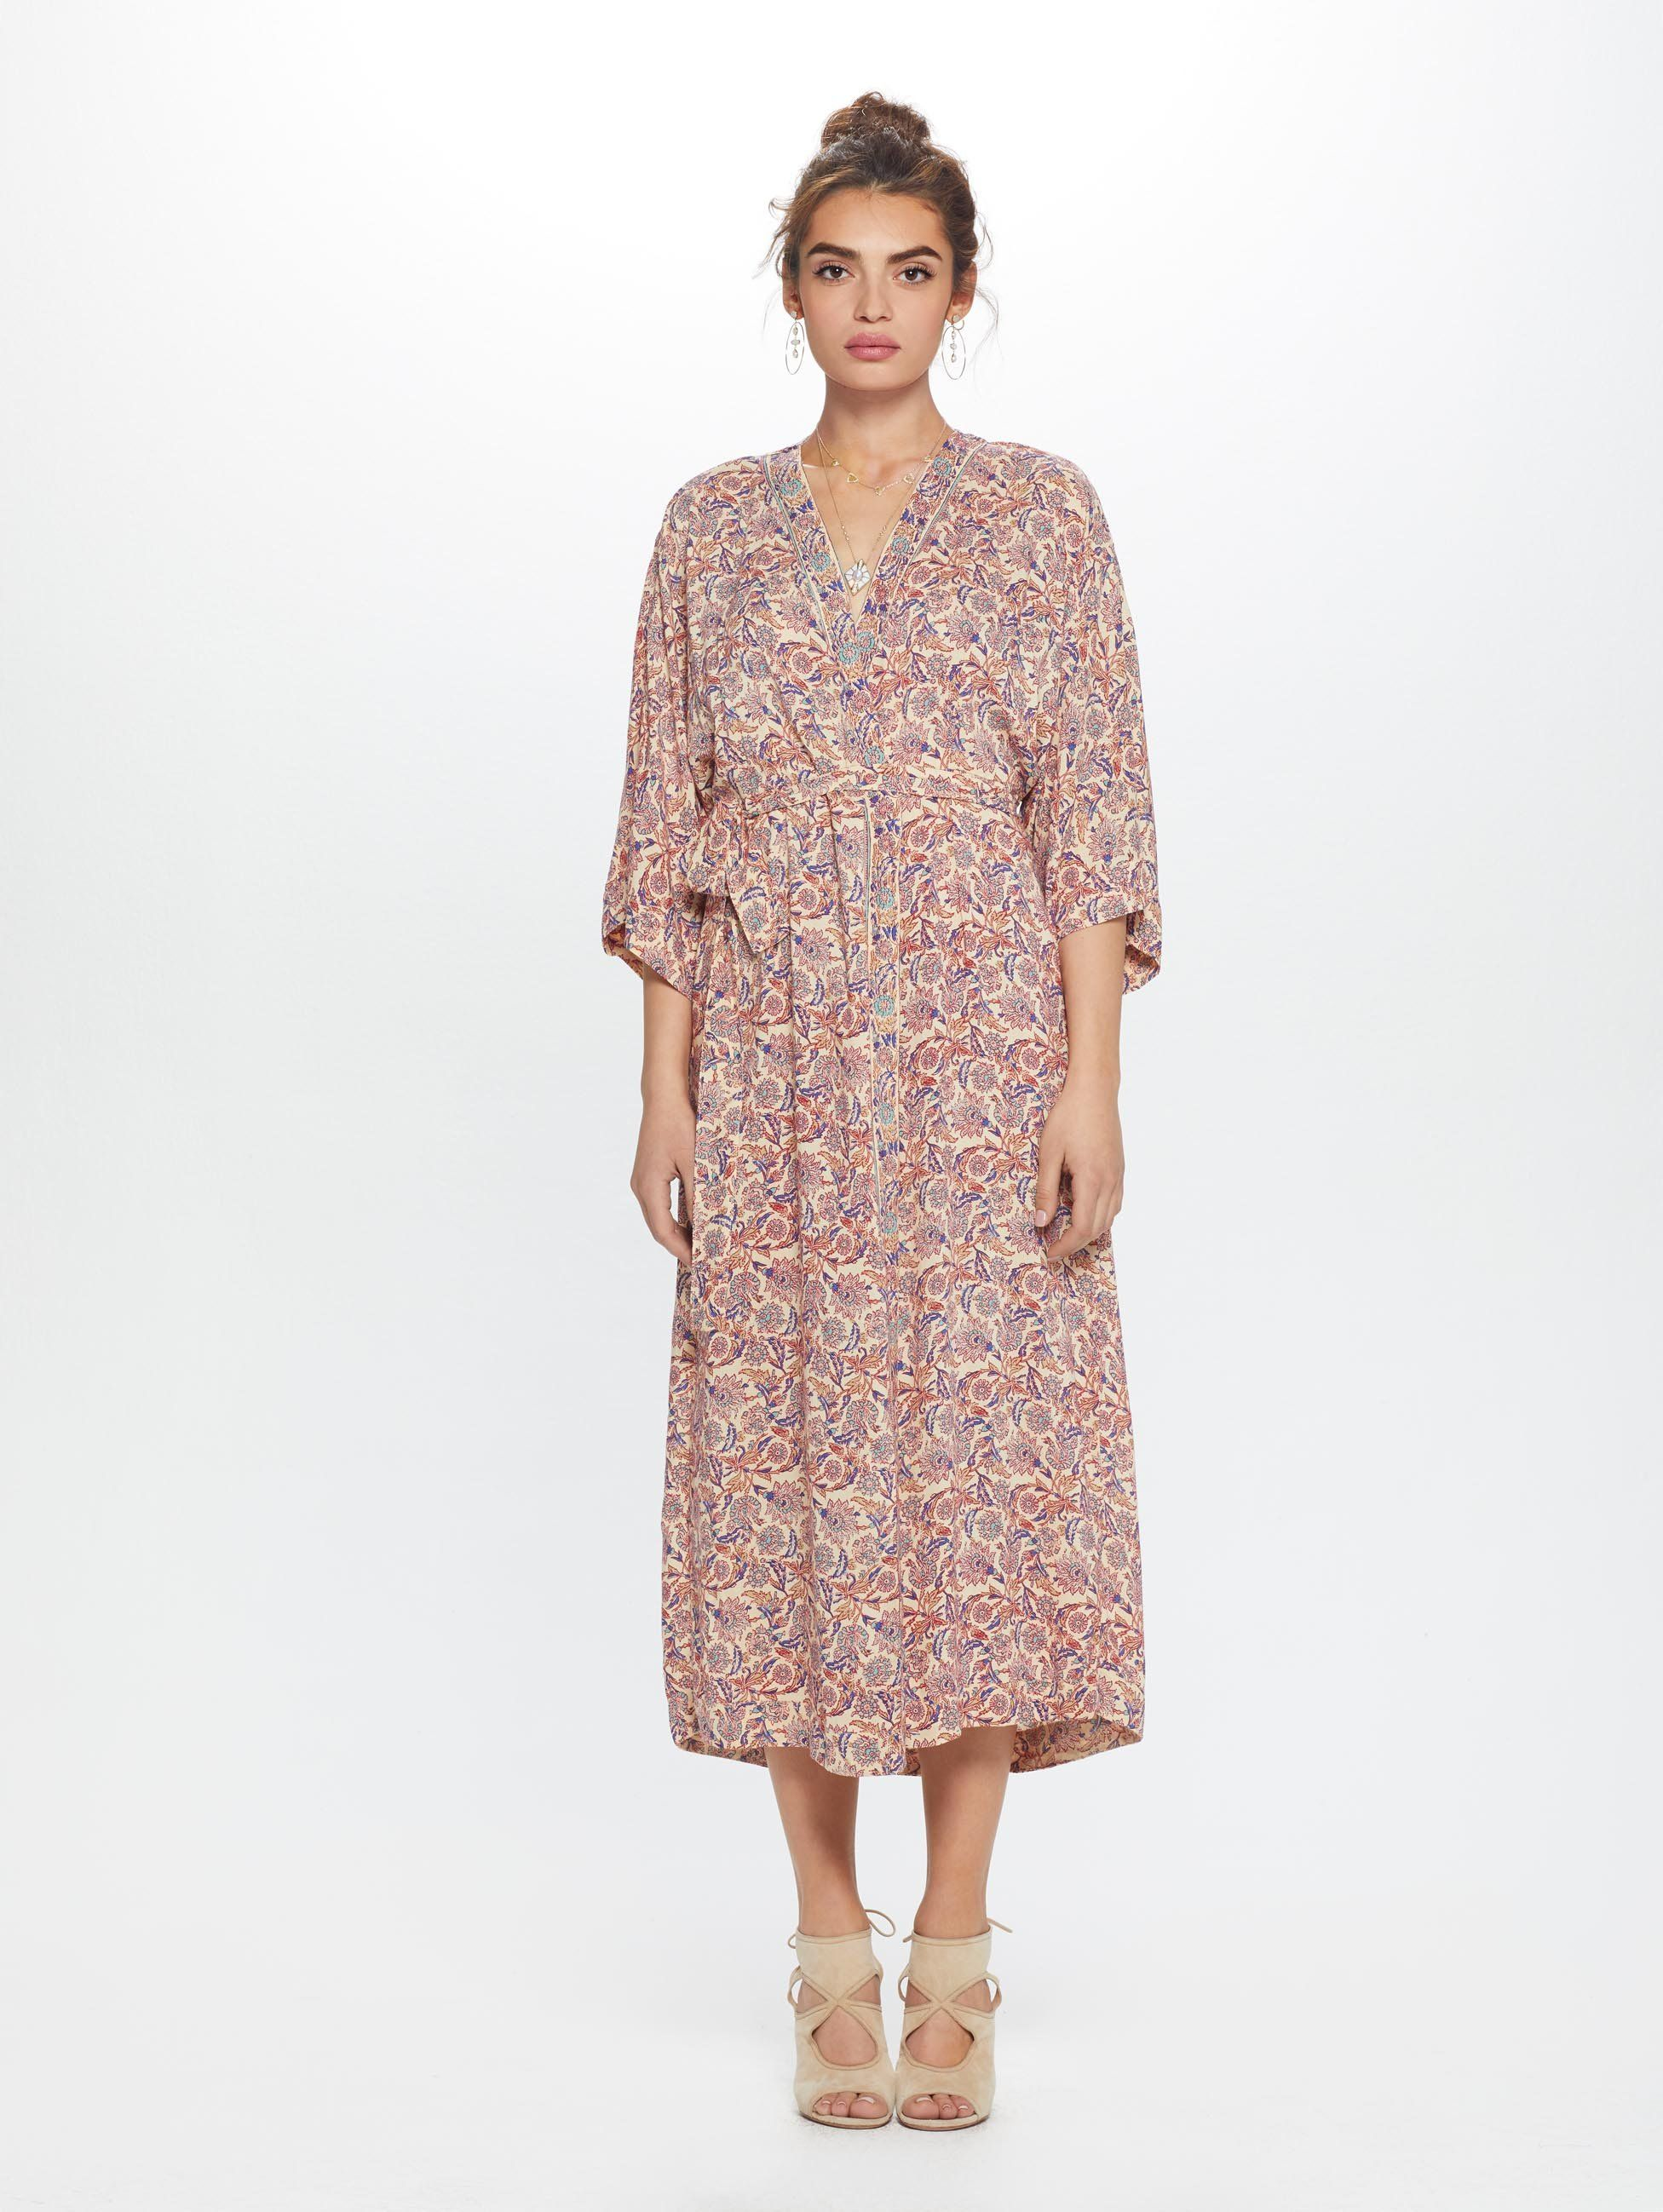 1d1d7f528fad All wrapped up. Natalie Martin's kimono-inspired dress now in the dreamiest  of floral prints. Imported. Style no. T299-611-NOC, R009